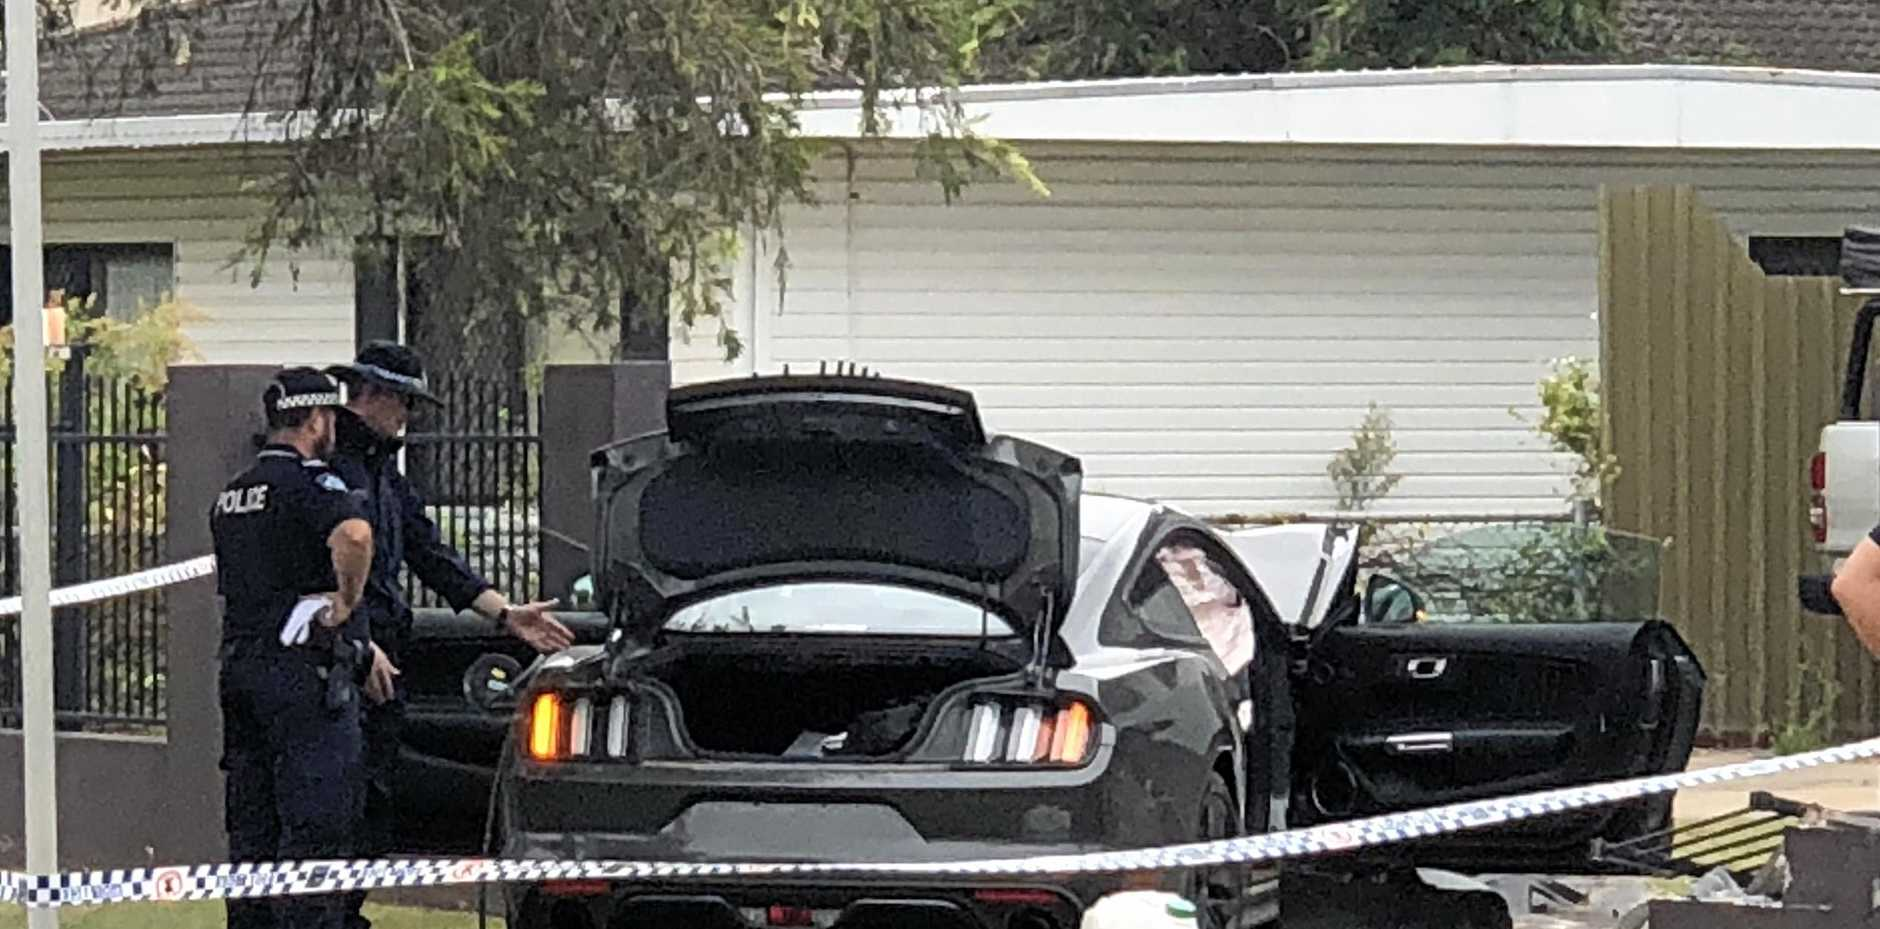 A stolen Ford GT Mustang was crashed through the front fence of a home in Archibald Street on Friday, January 5.